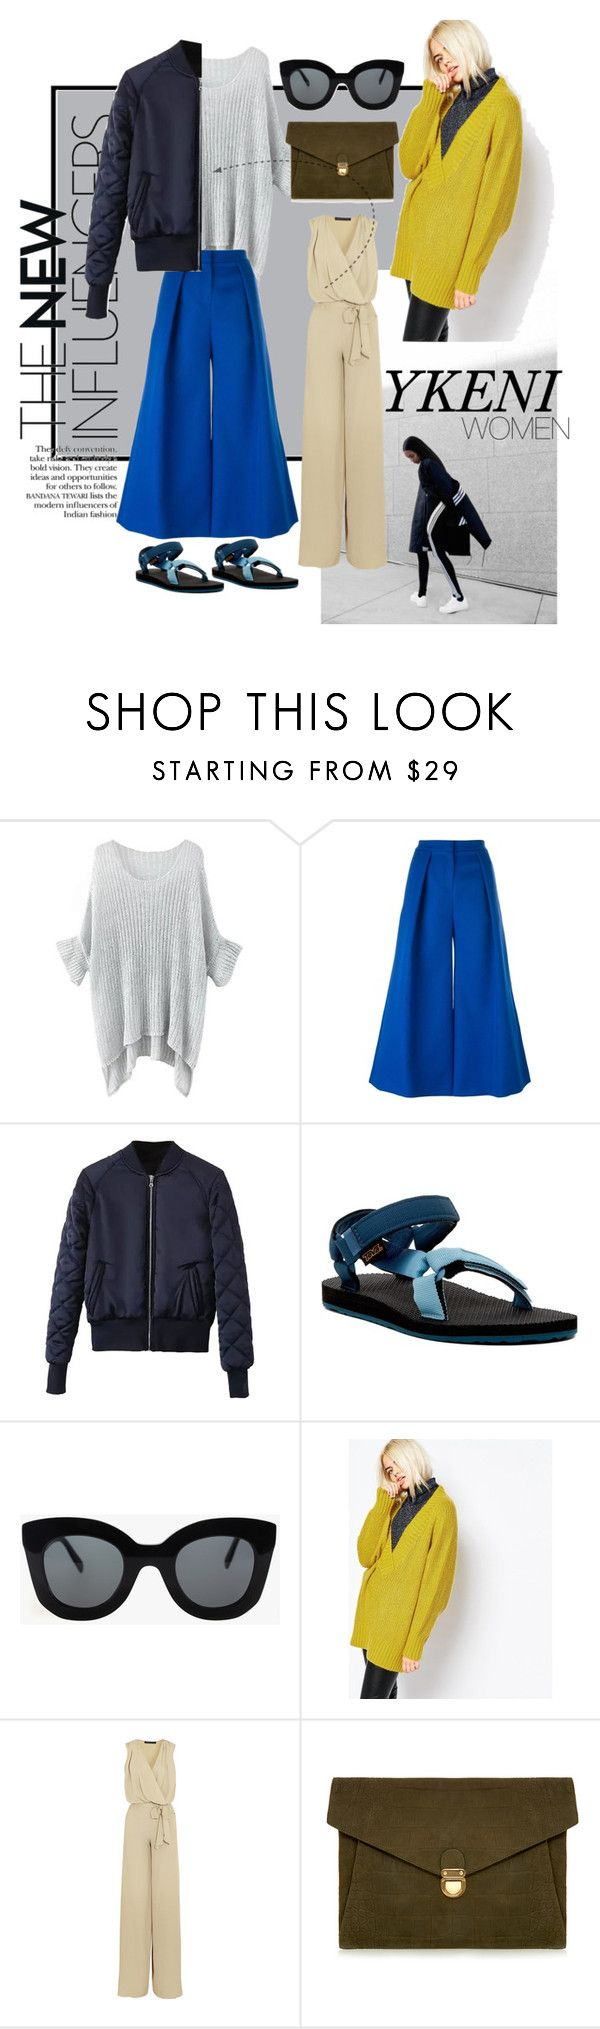 """60secondstyle"" by izrinizelan on Polyvore featuring Roksanda, Teva, CÉLINE, Monki, Maria Grachvogel, J.Lindeberg, women's clothing, women, female and woman"